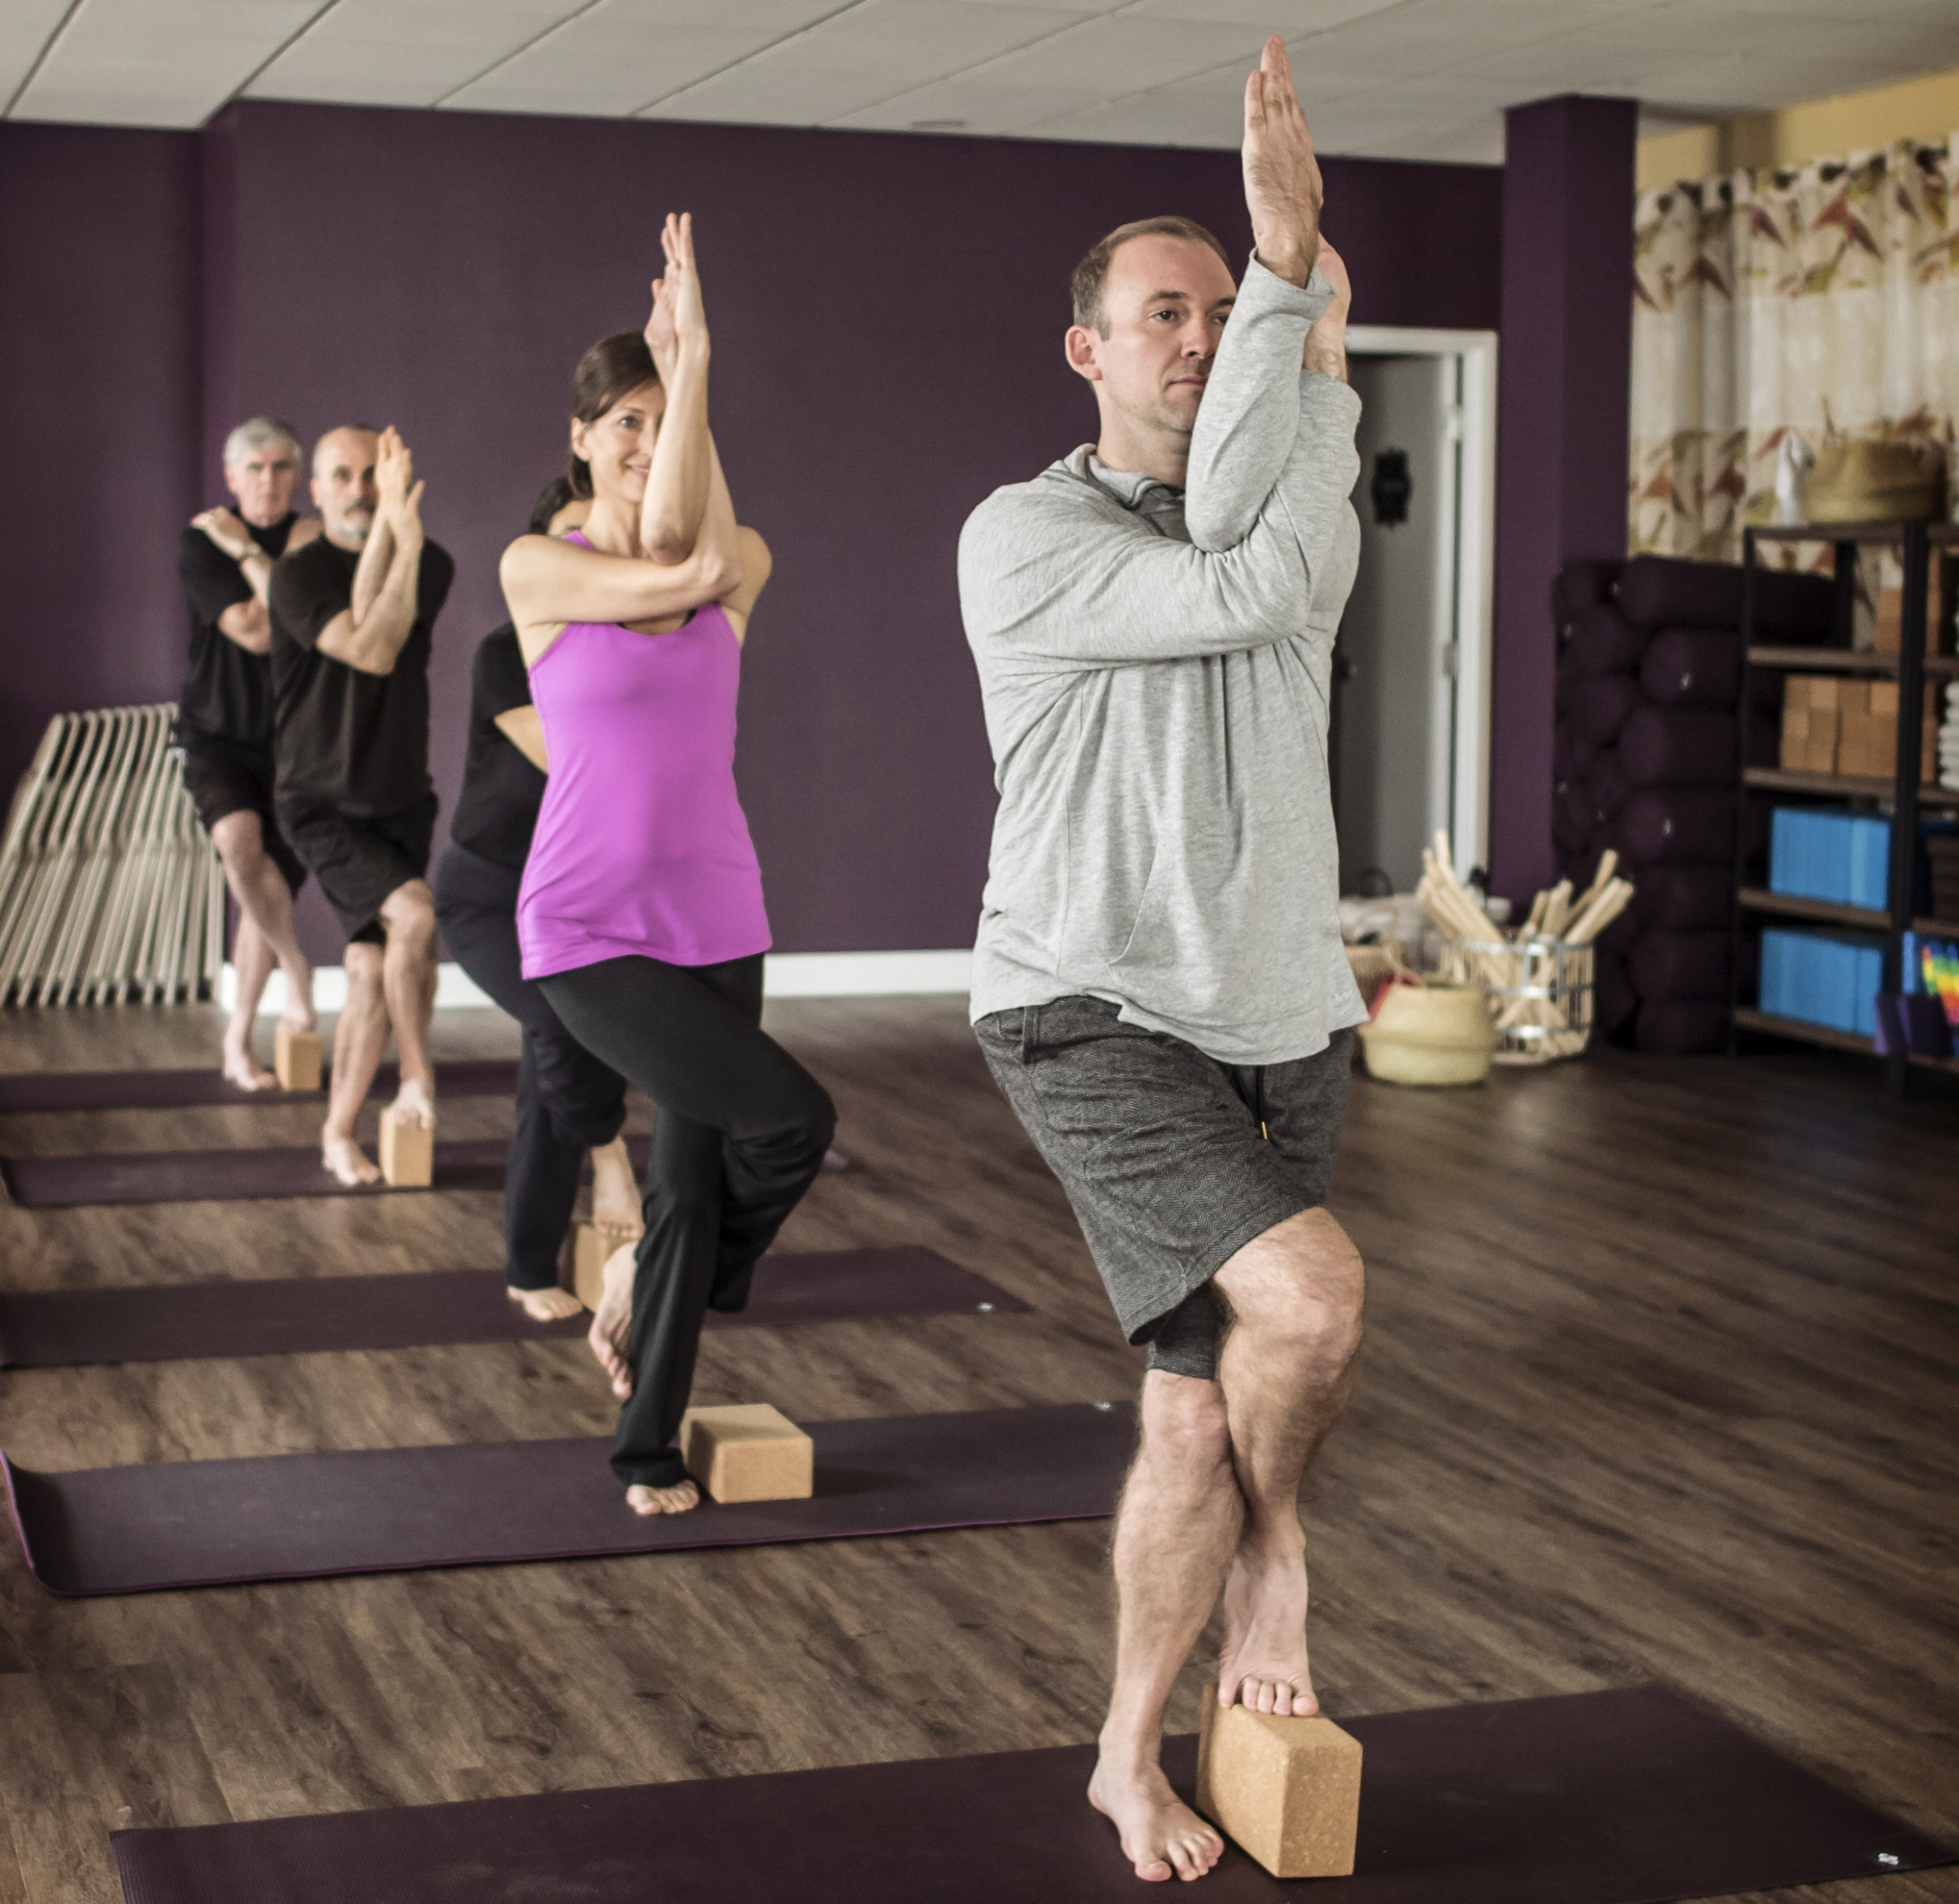 Gentle Yoga - Move through a gentle yoga class that will help you build strength, challenge your balance, and foster flexibility while learning to slow down and breathe. All levels of experience are welcome, including beginners. Flexibility is not required!